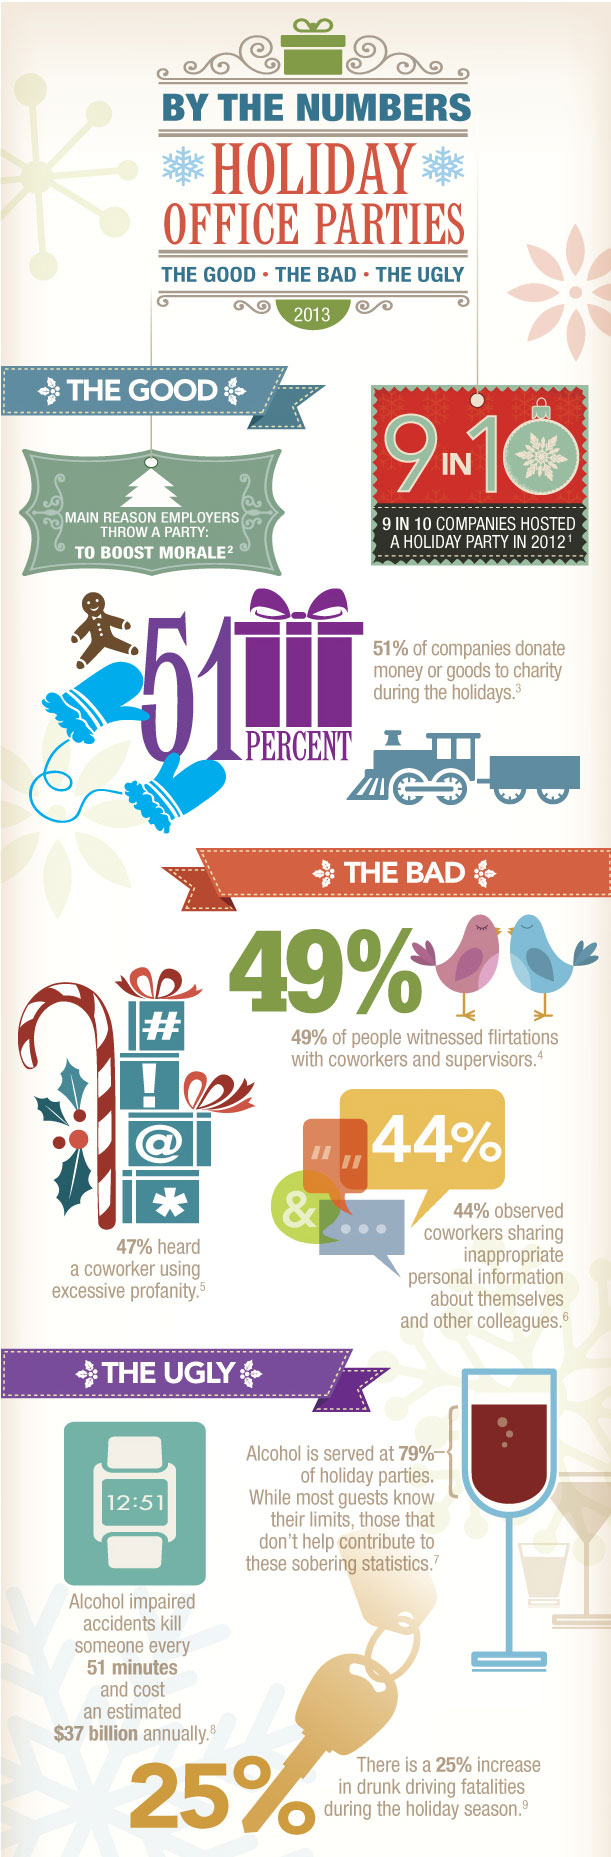 Holiday Office Parties Infographic